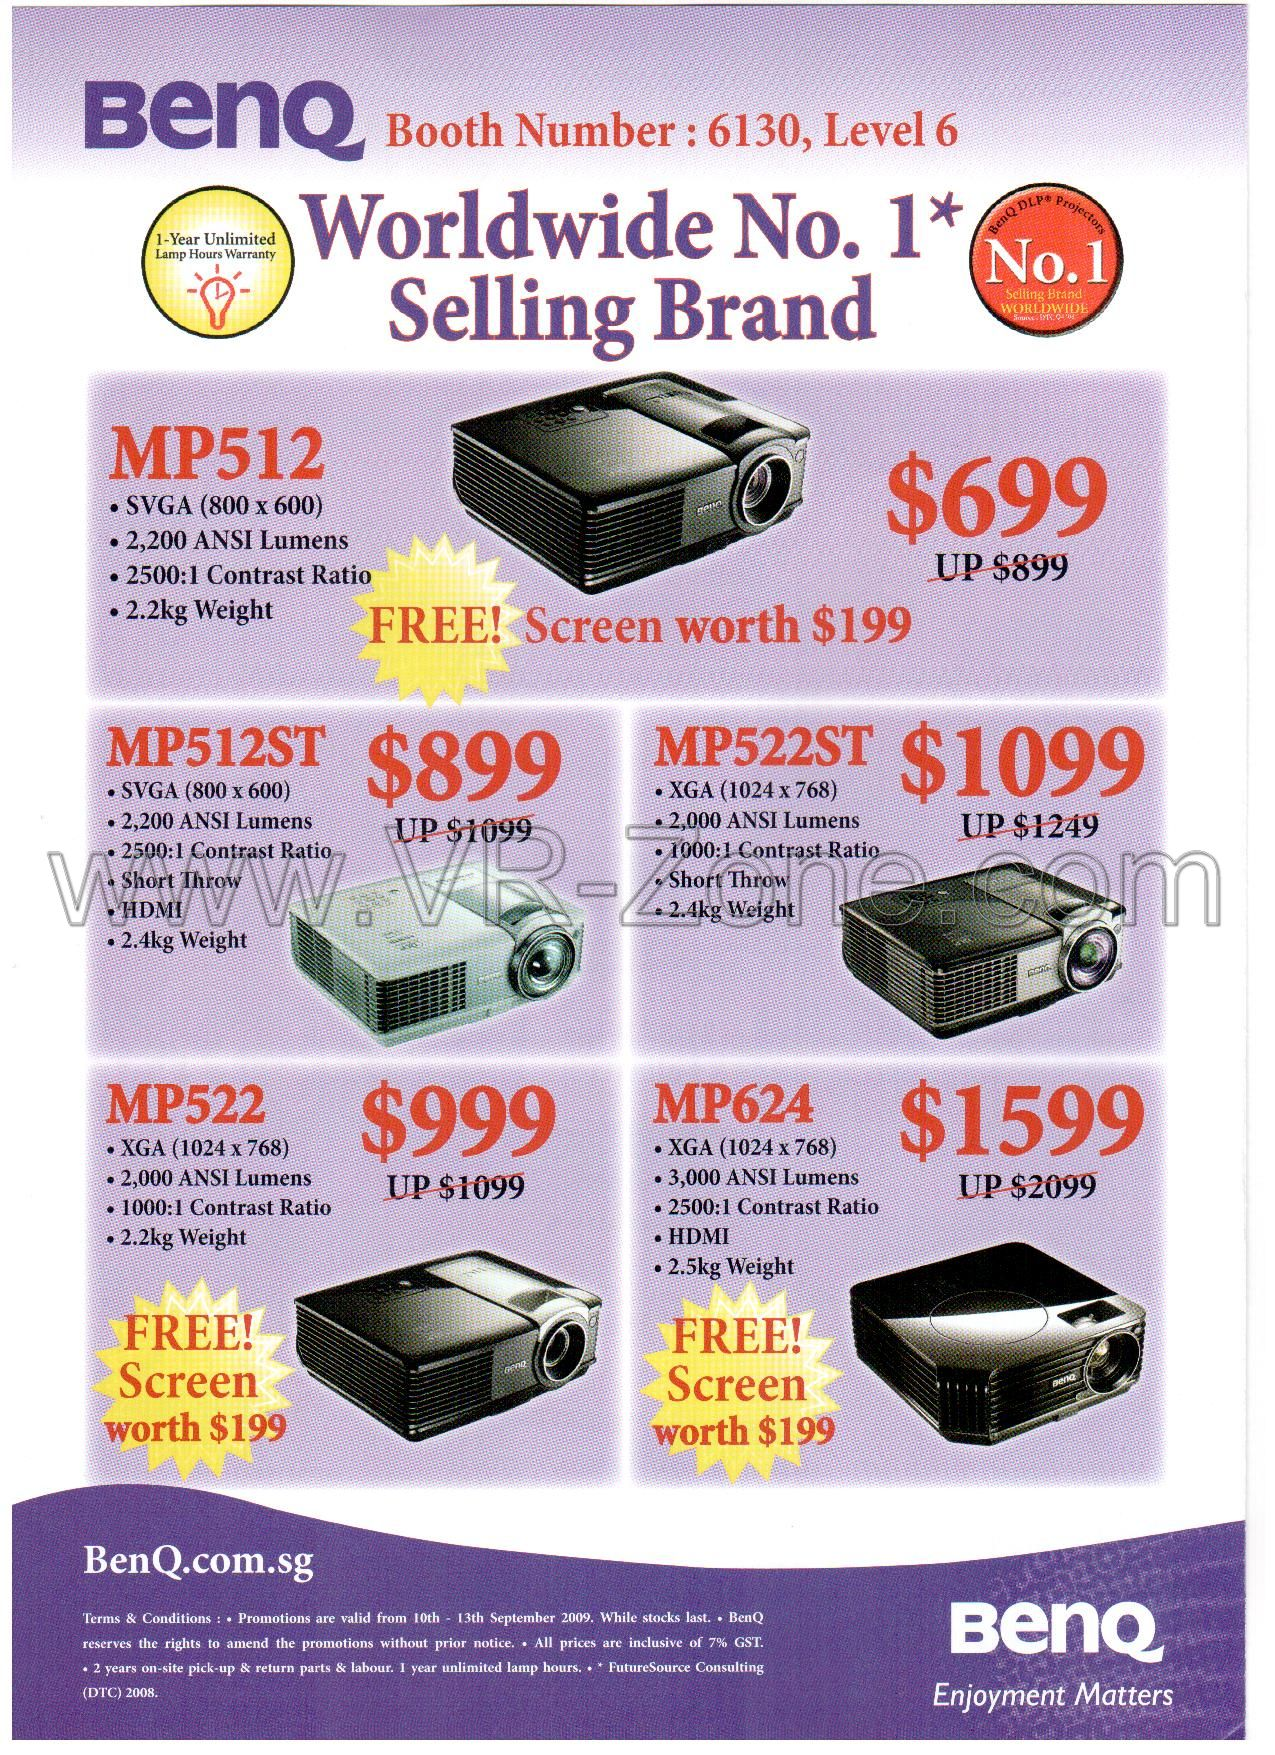 Comex 2009 price list image brochure of BenQ Projectors MP512 MP512ST MP522ST MP624 MP522